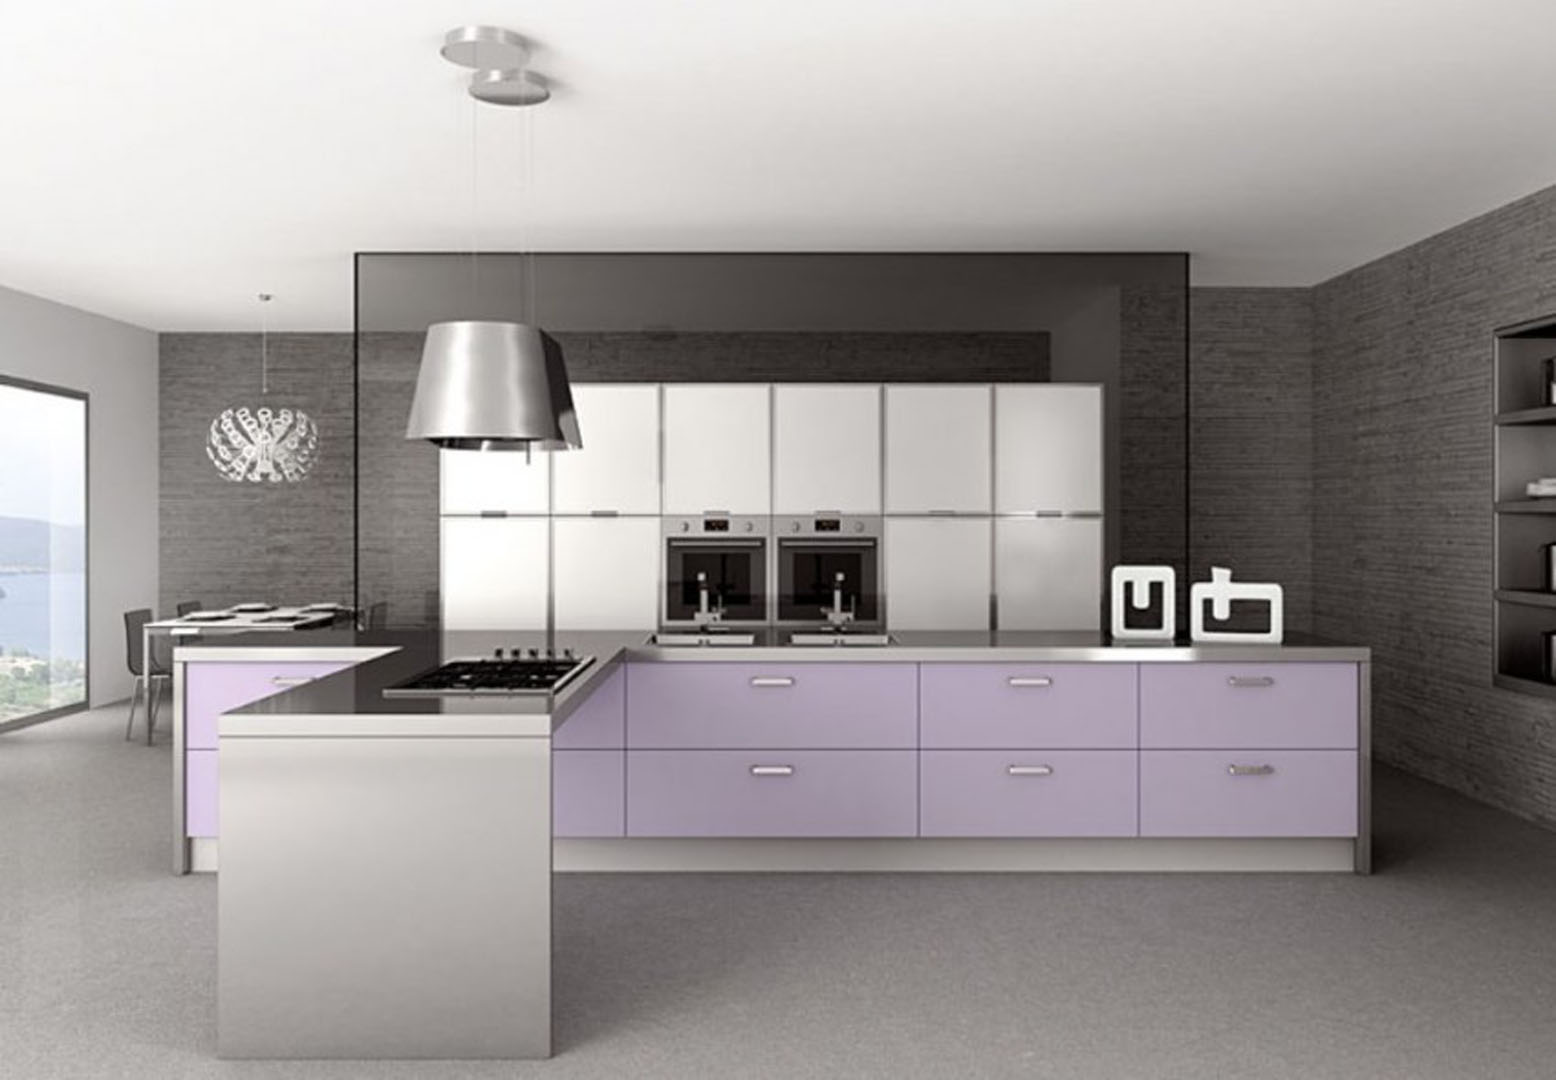 Mobili cucina moderna excellent cucine country prezzi best cucine country prezzi with cucine - Cucine moderne scure ...